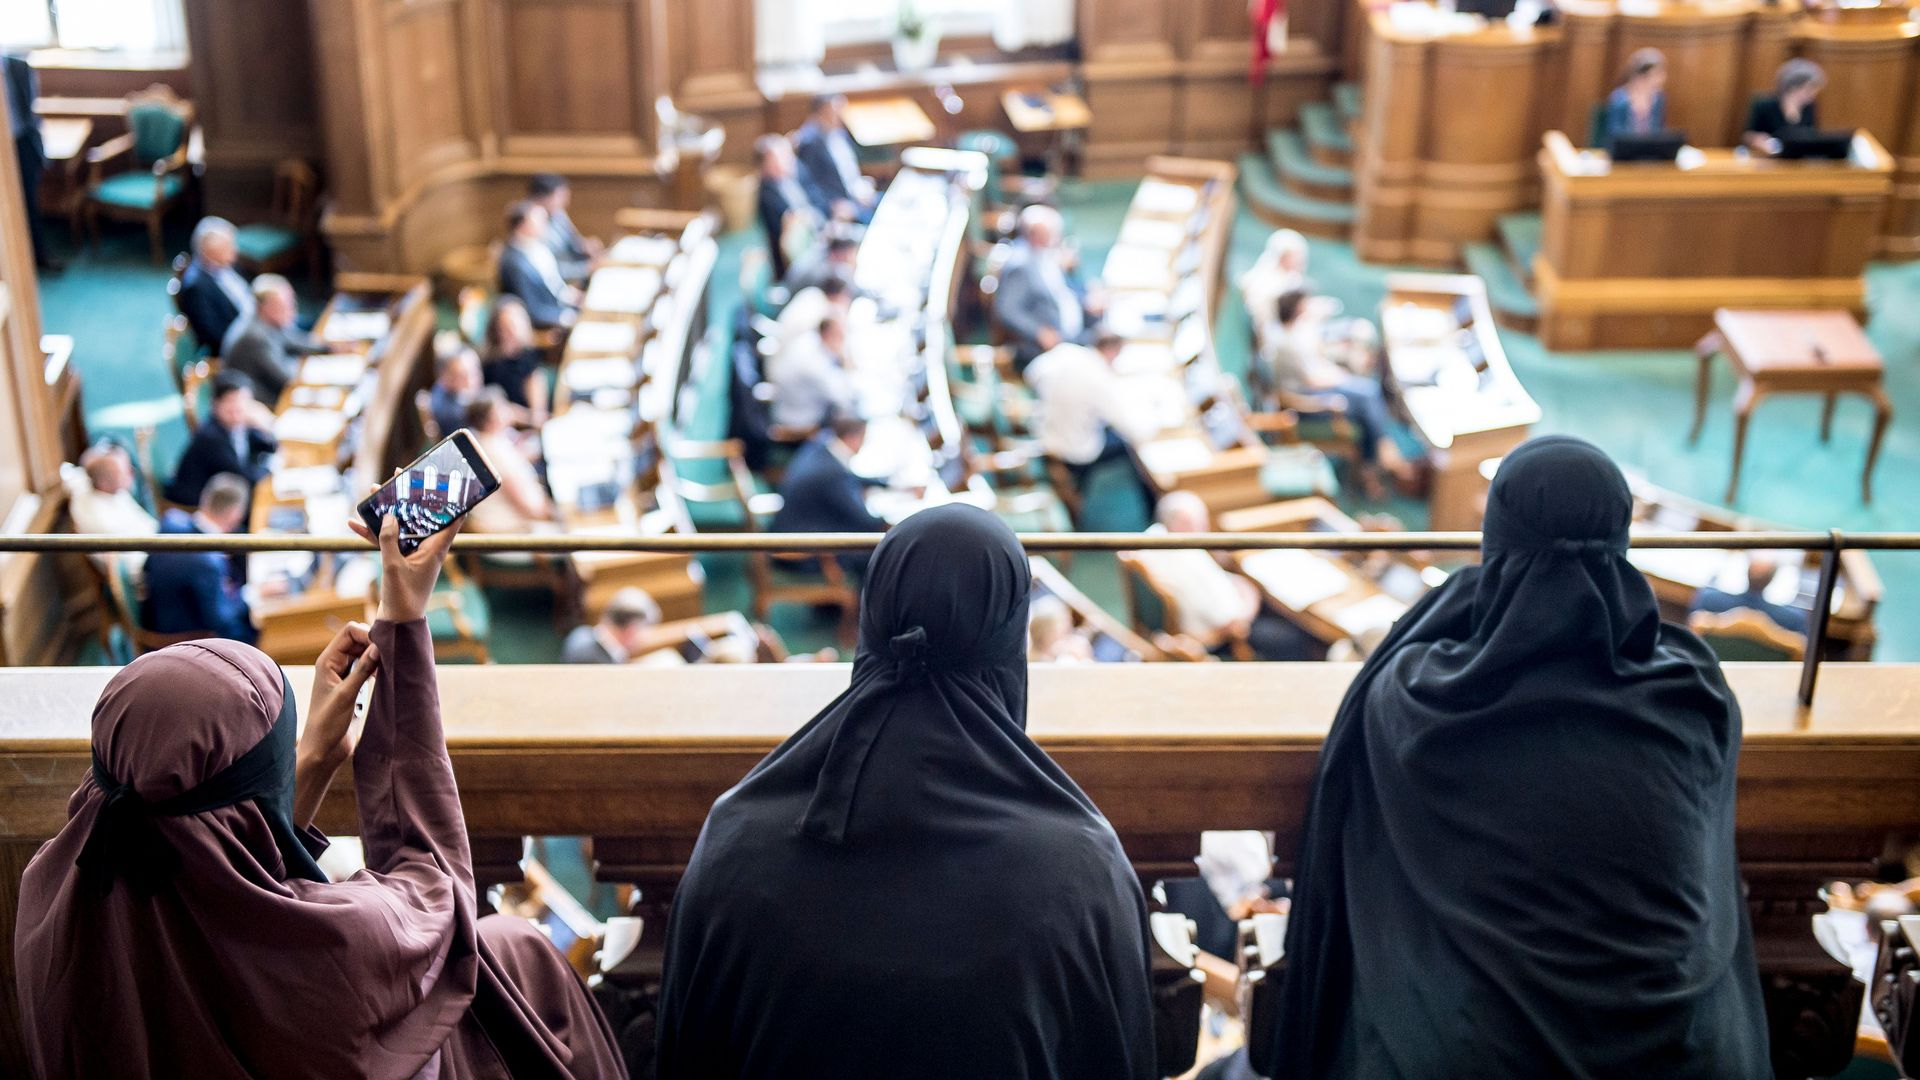 Women wearing niqab sit in the audience at the Danish Parliament in Copenhagen, Denmark.